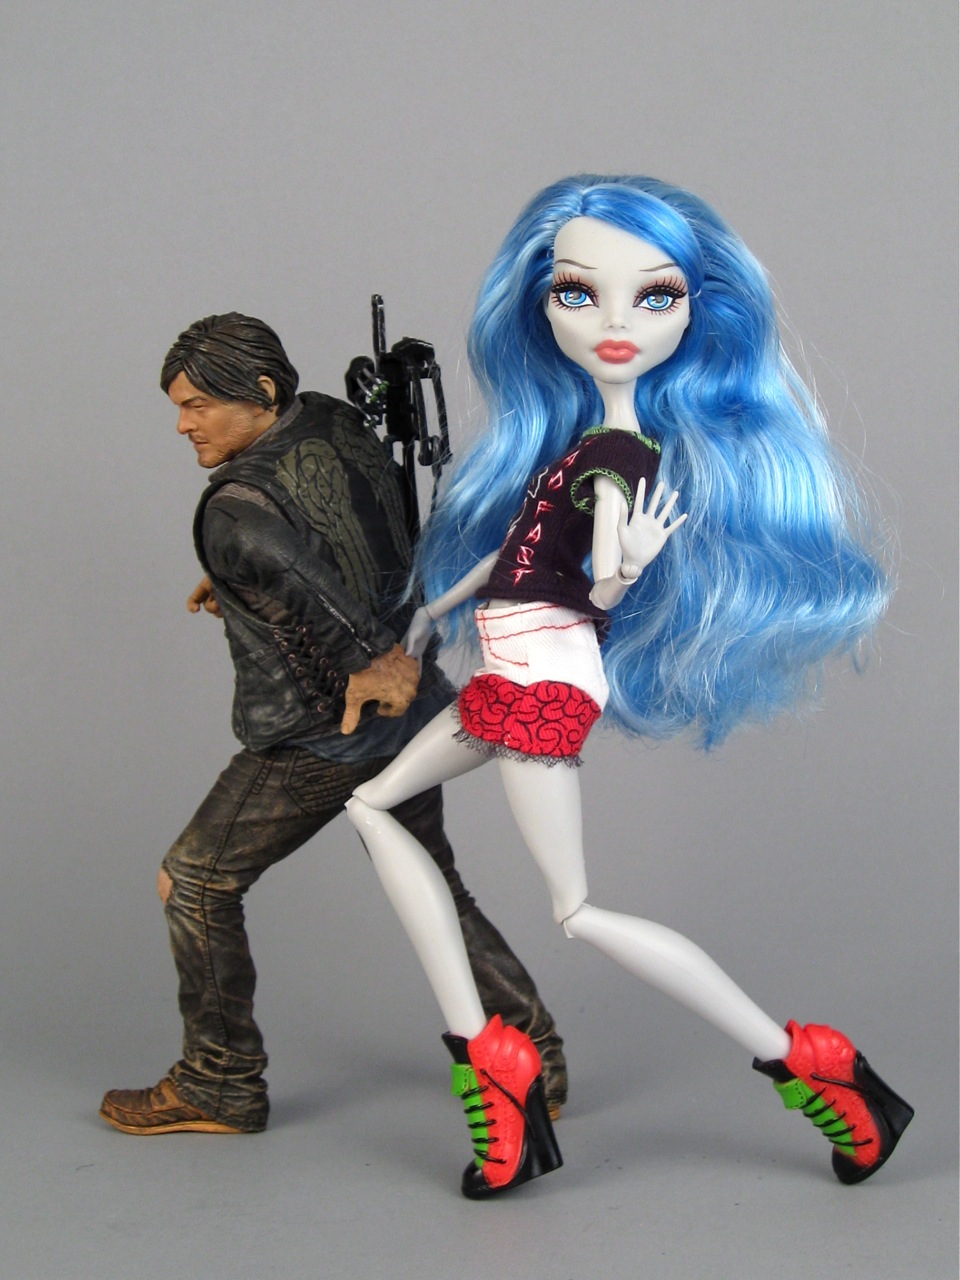 Ghoulia flirts with Daryl